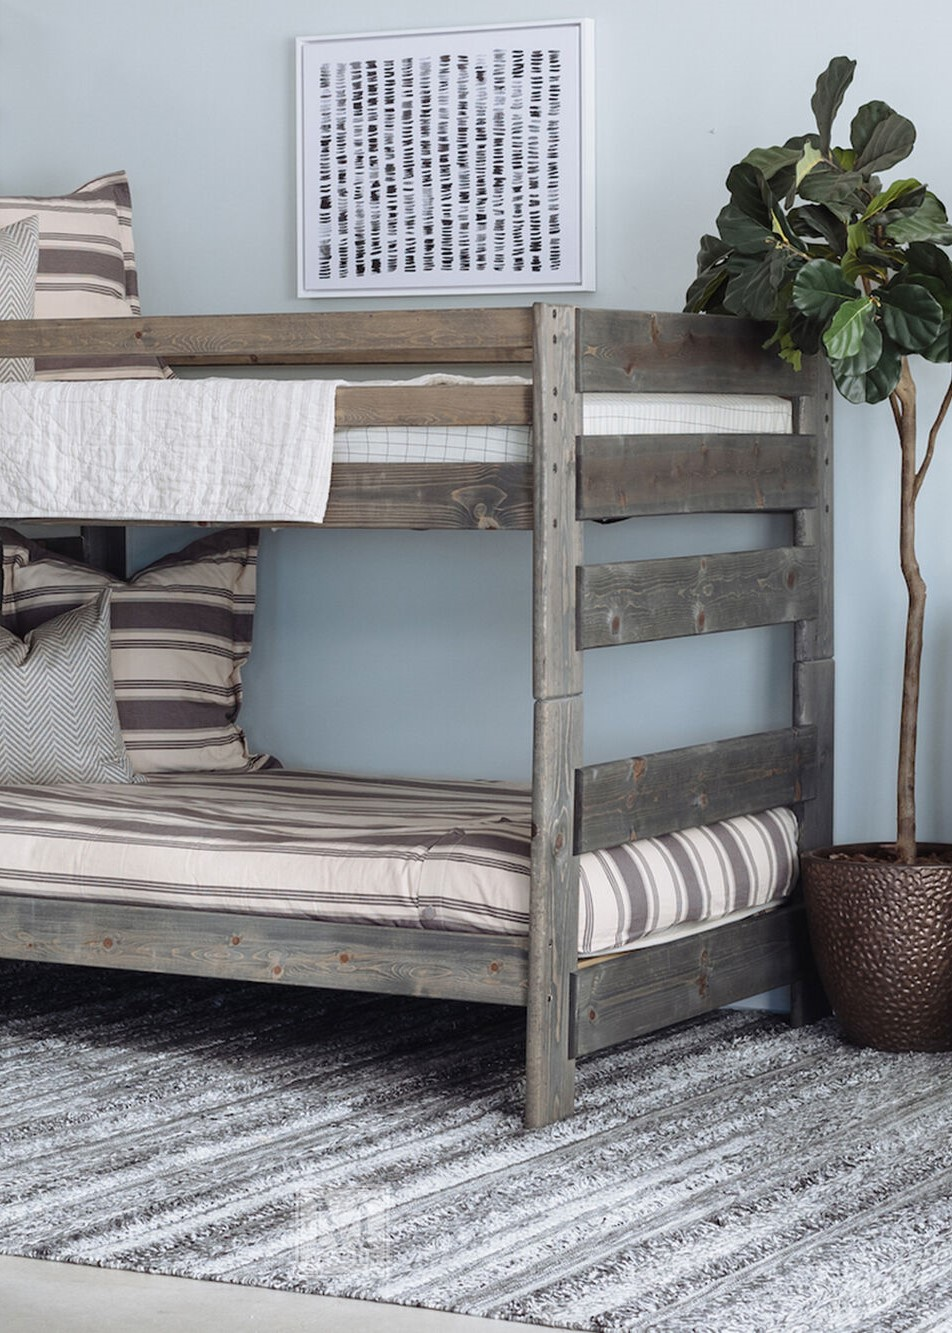 Bunk Bed Charm Bedroom decor